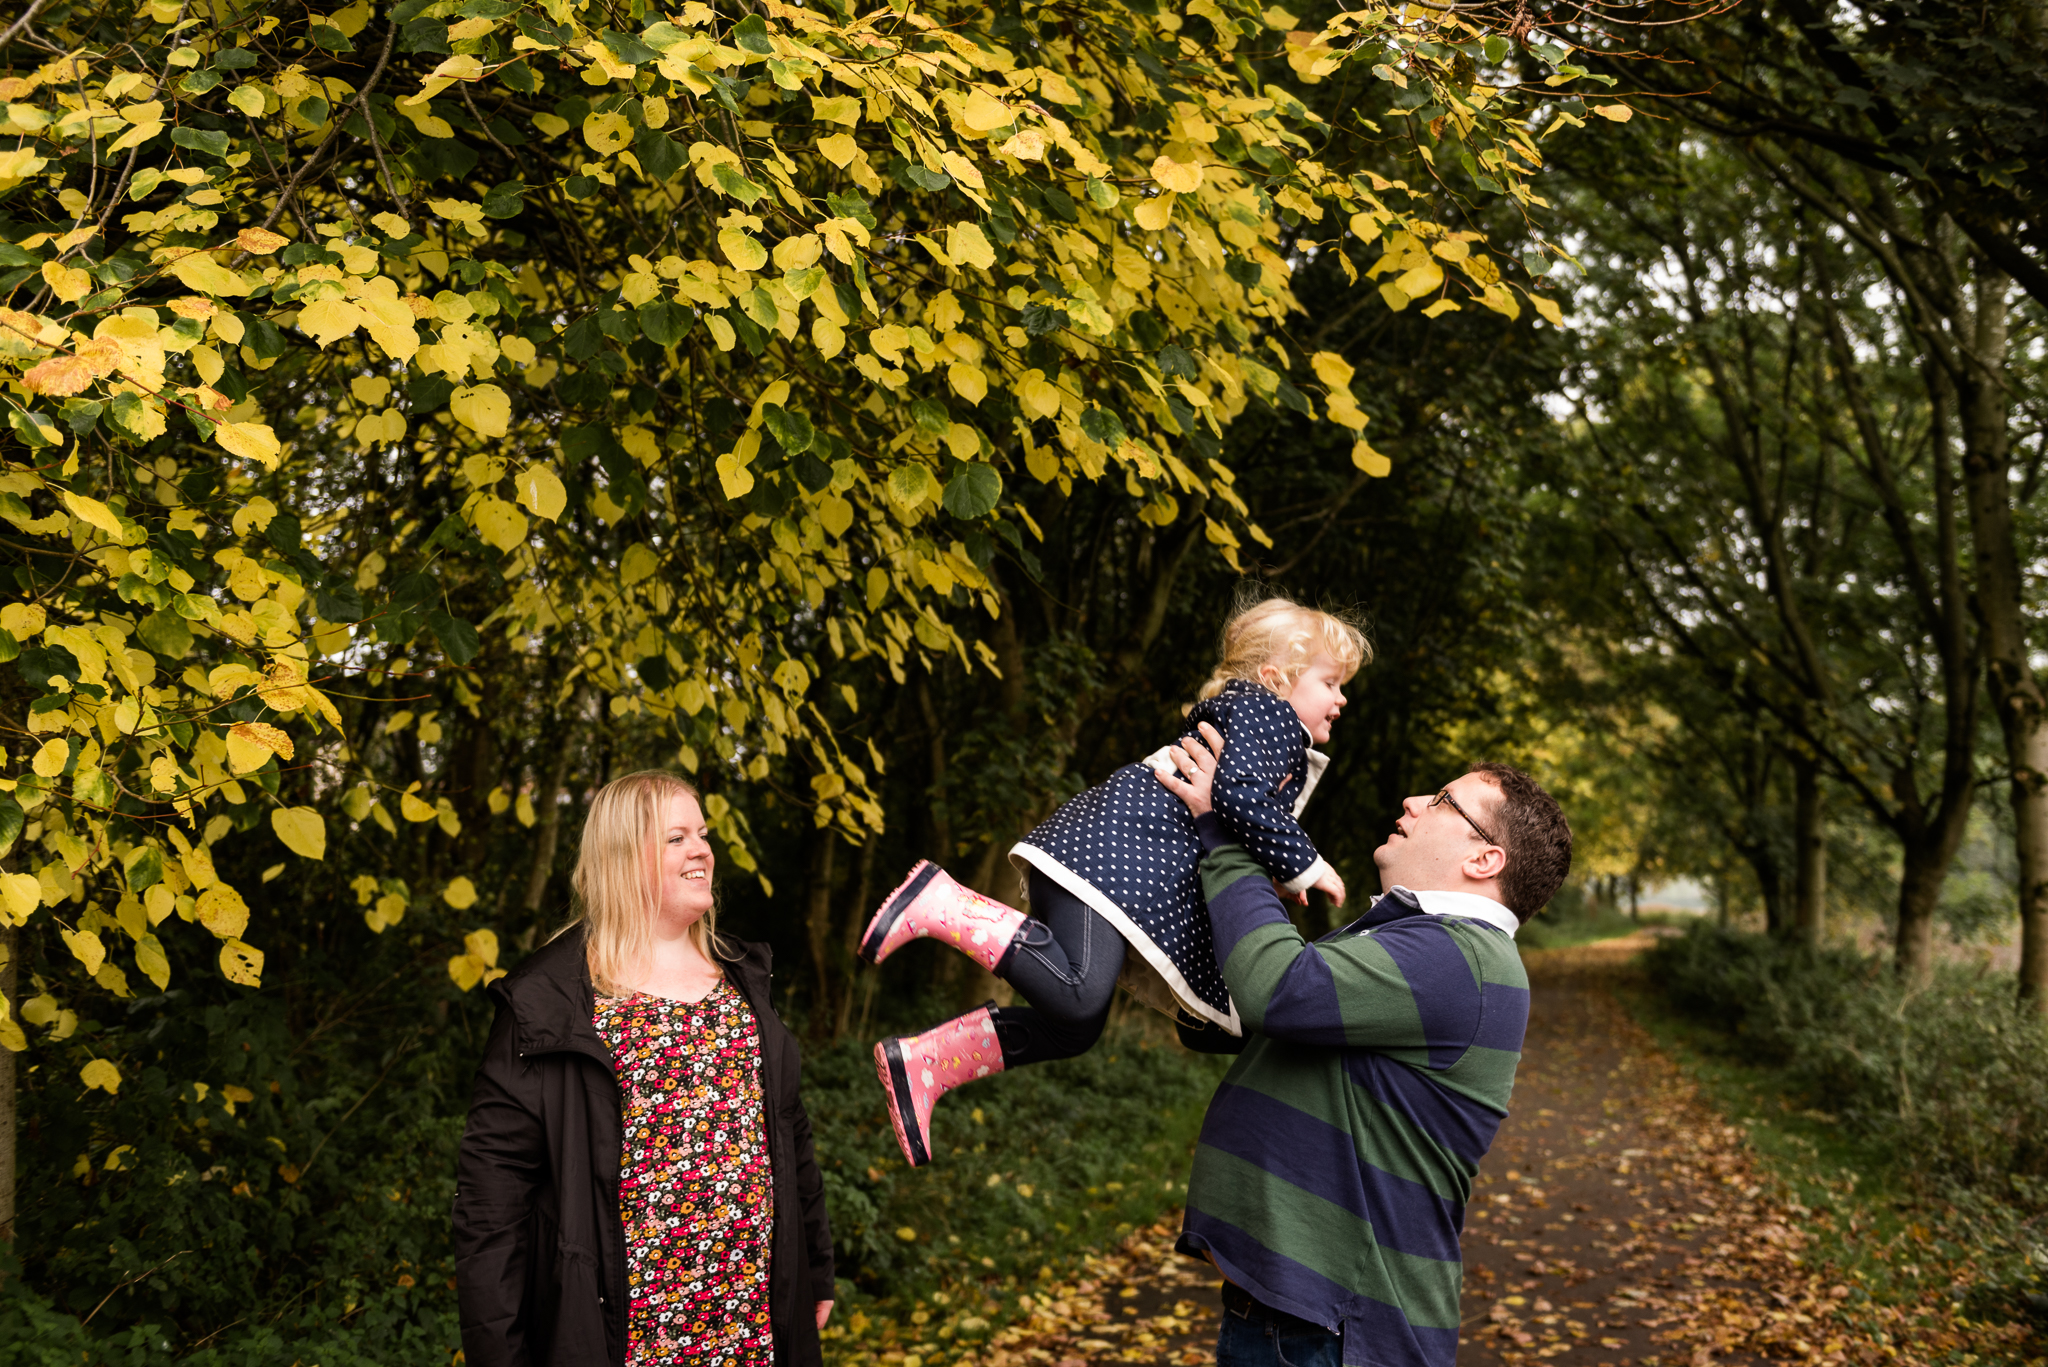 Staffordshire Documentary Family Photography Autumn Lifestyle Fall Leaves - Jenny Harper-4.jpg